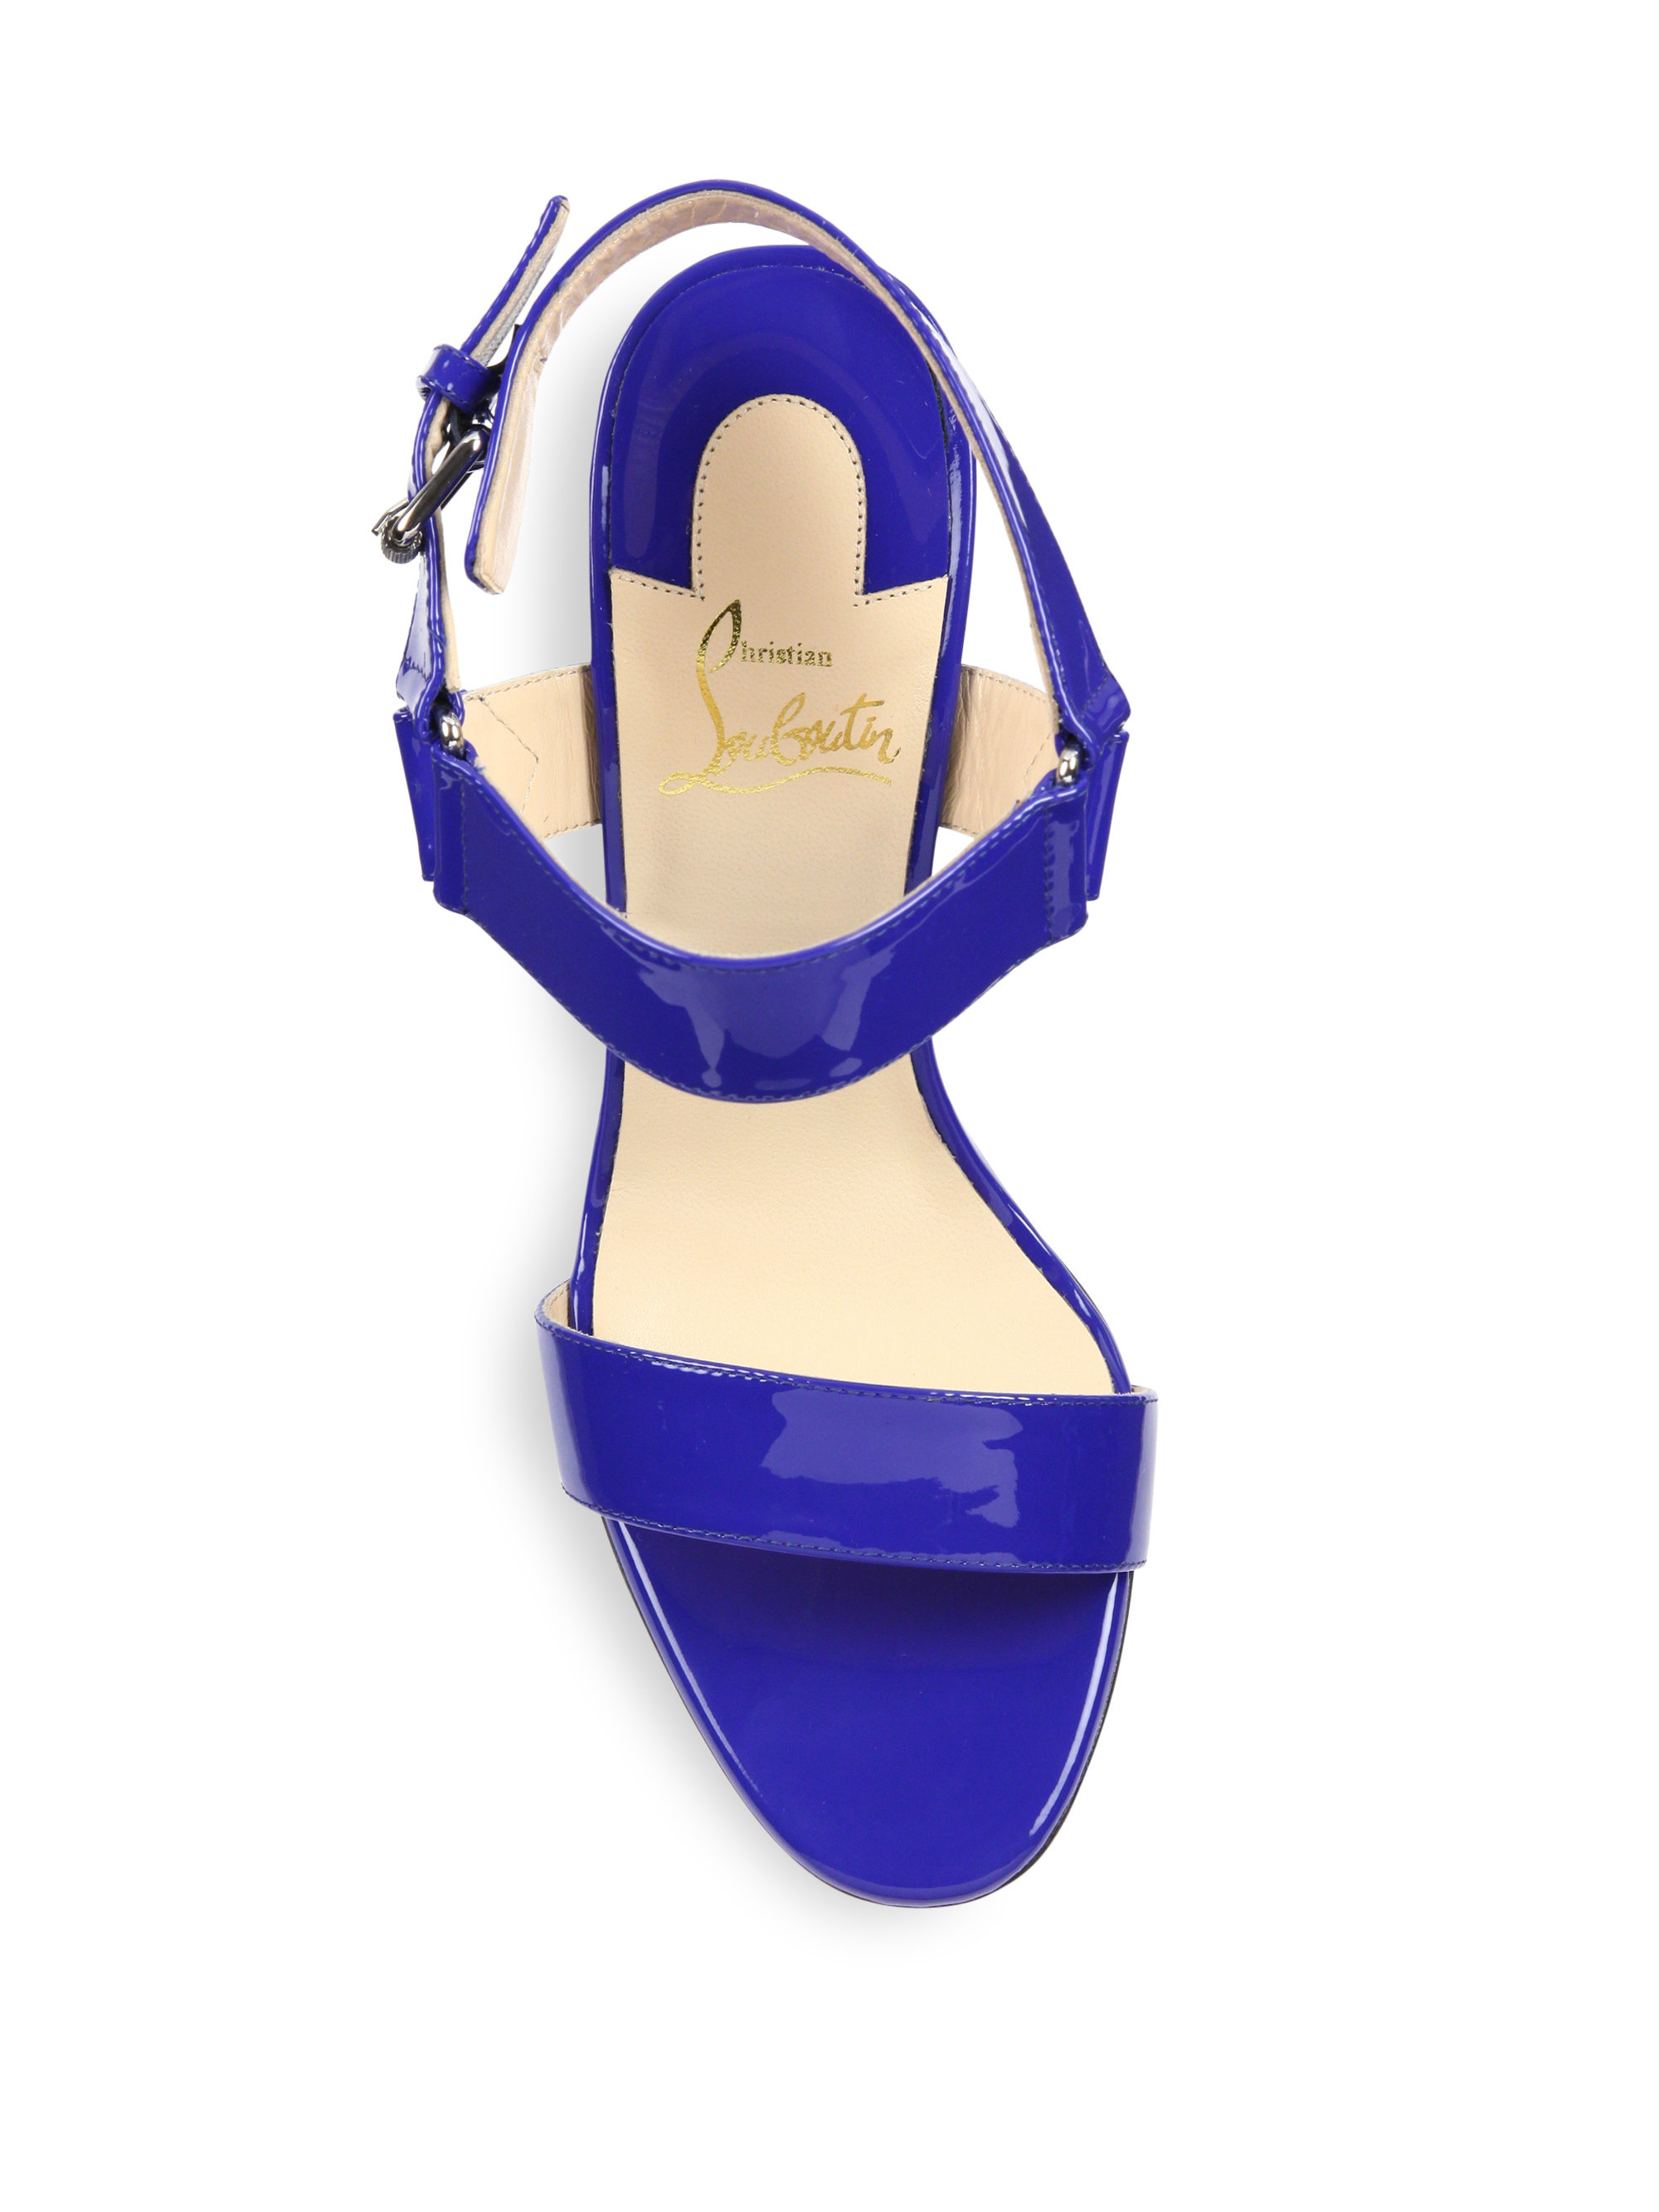 louis vuitton red bottom sneakers for men - Christian louboutin Sova Patent Leather Sandals in Blue (electric ...